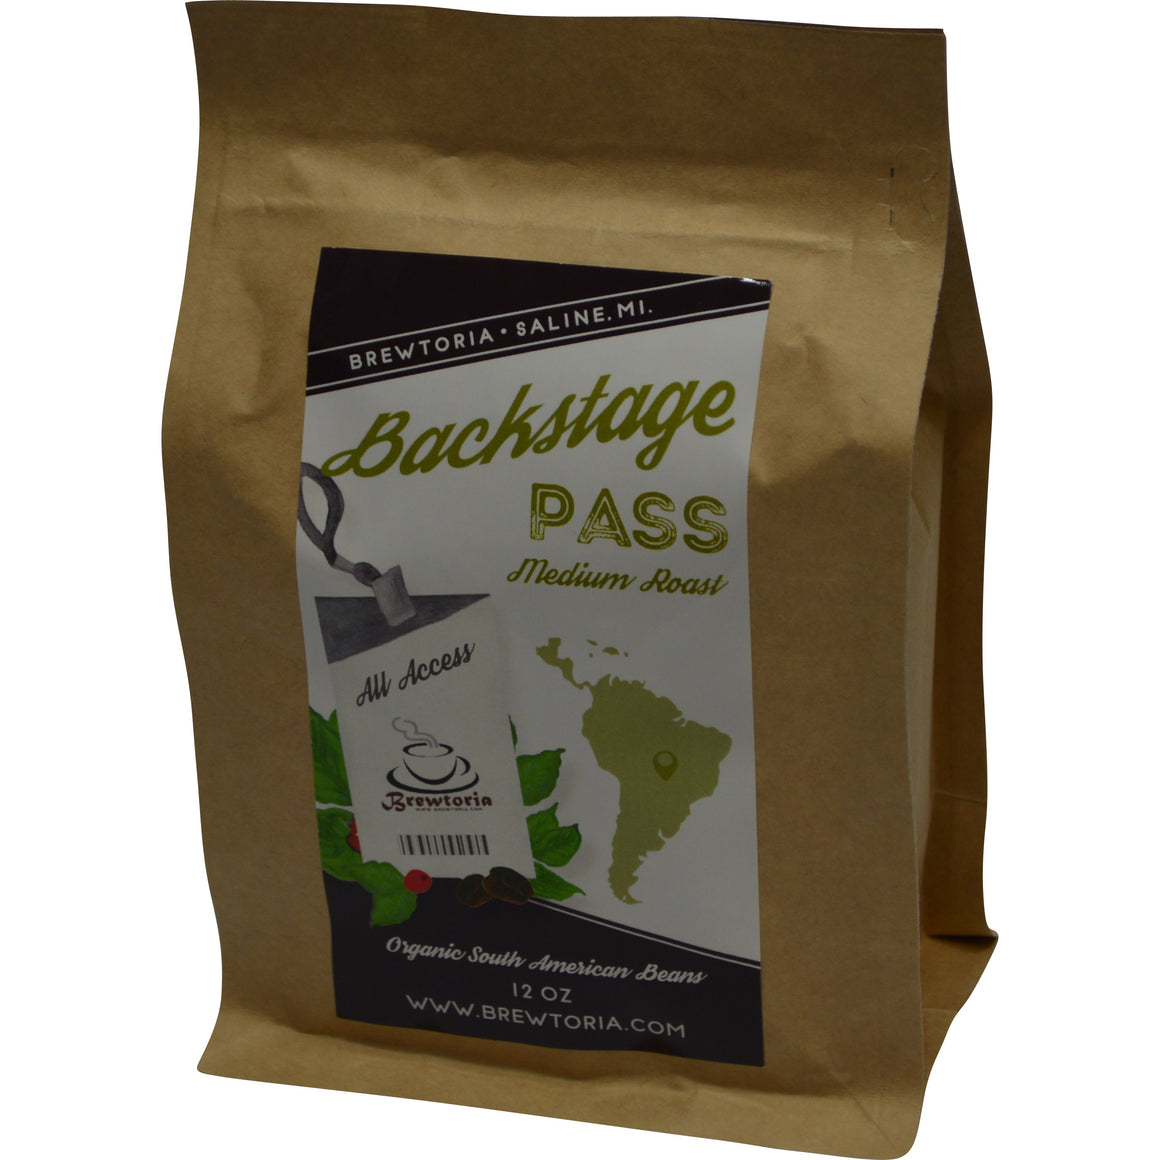 Backstage Pass - South American, Med Roast, Organic, 12 ounces